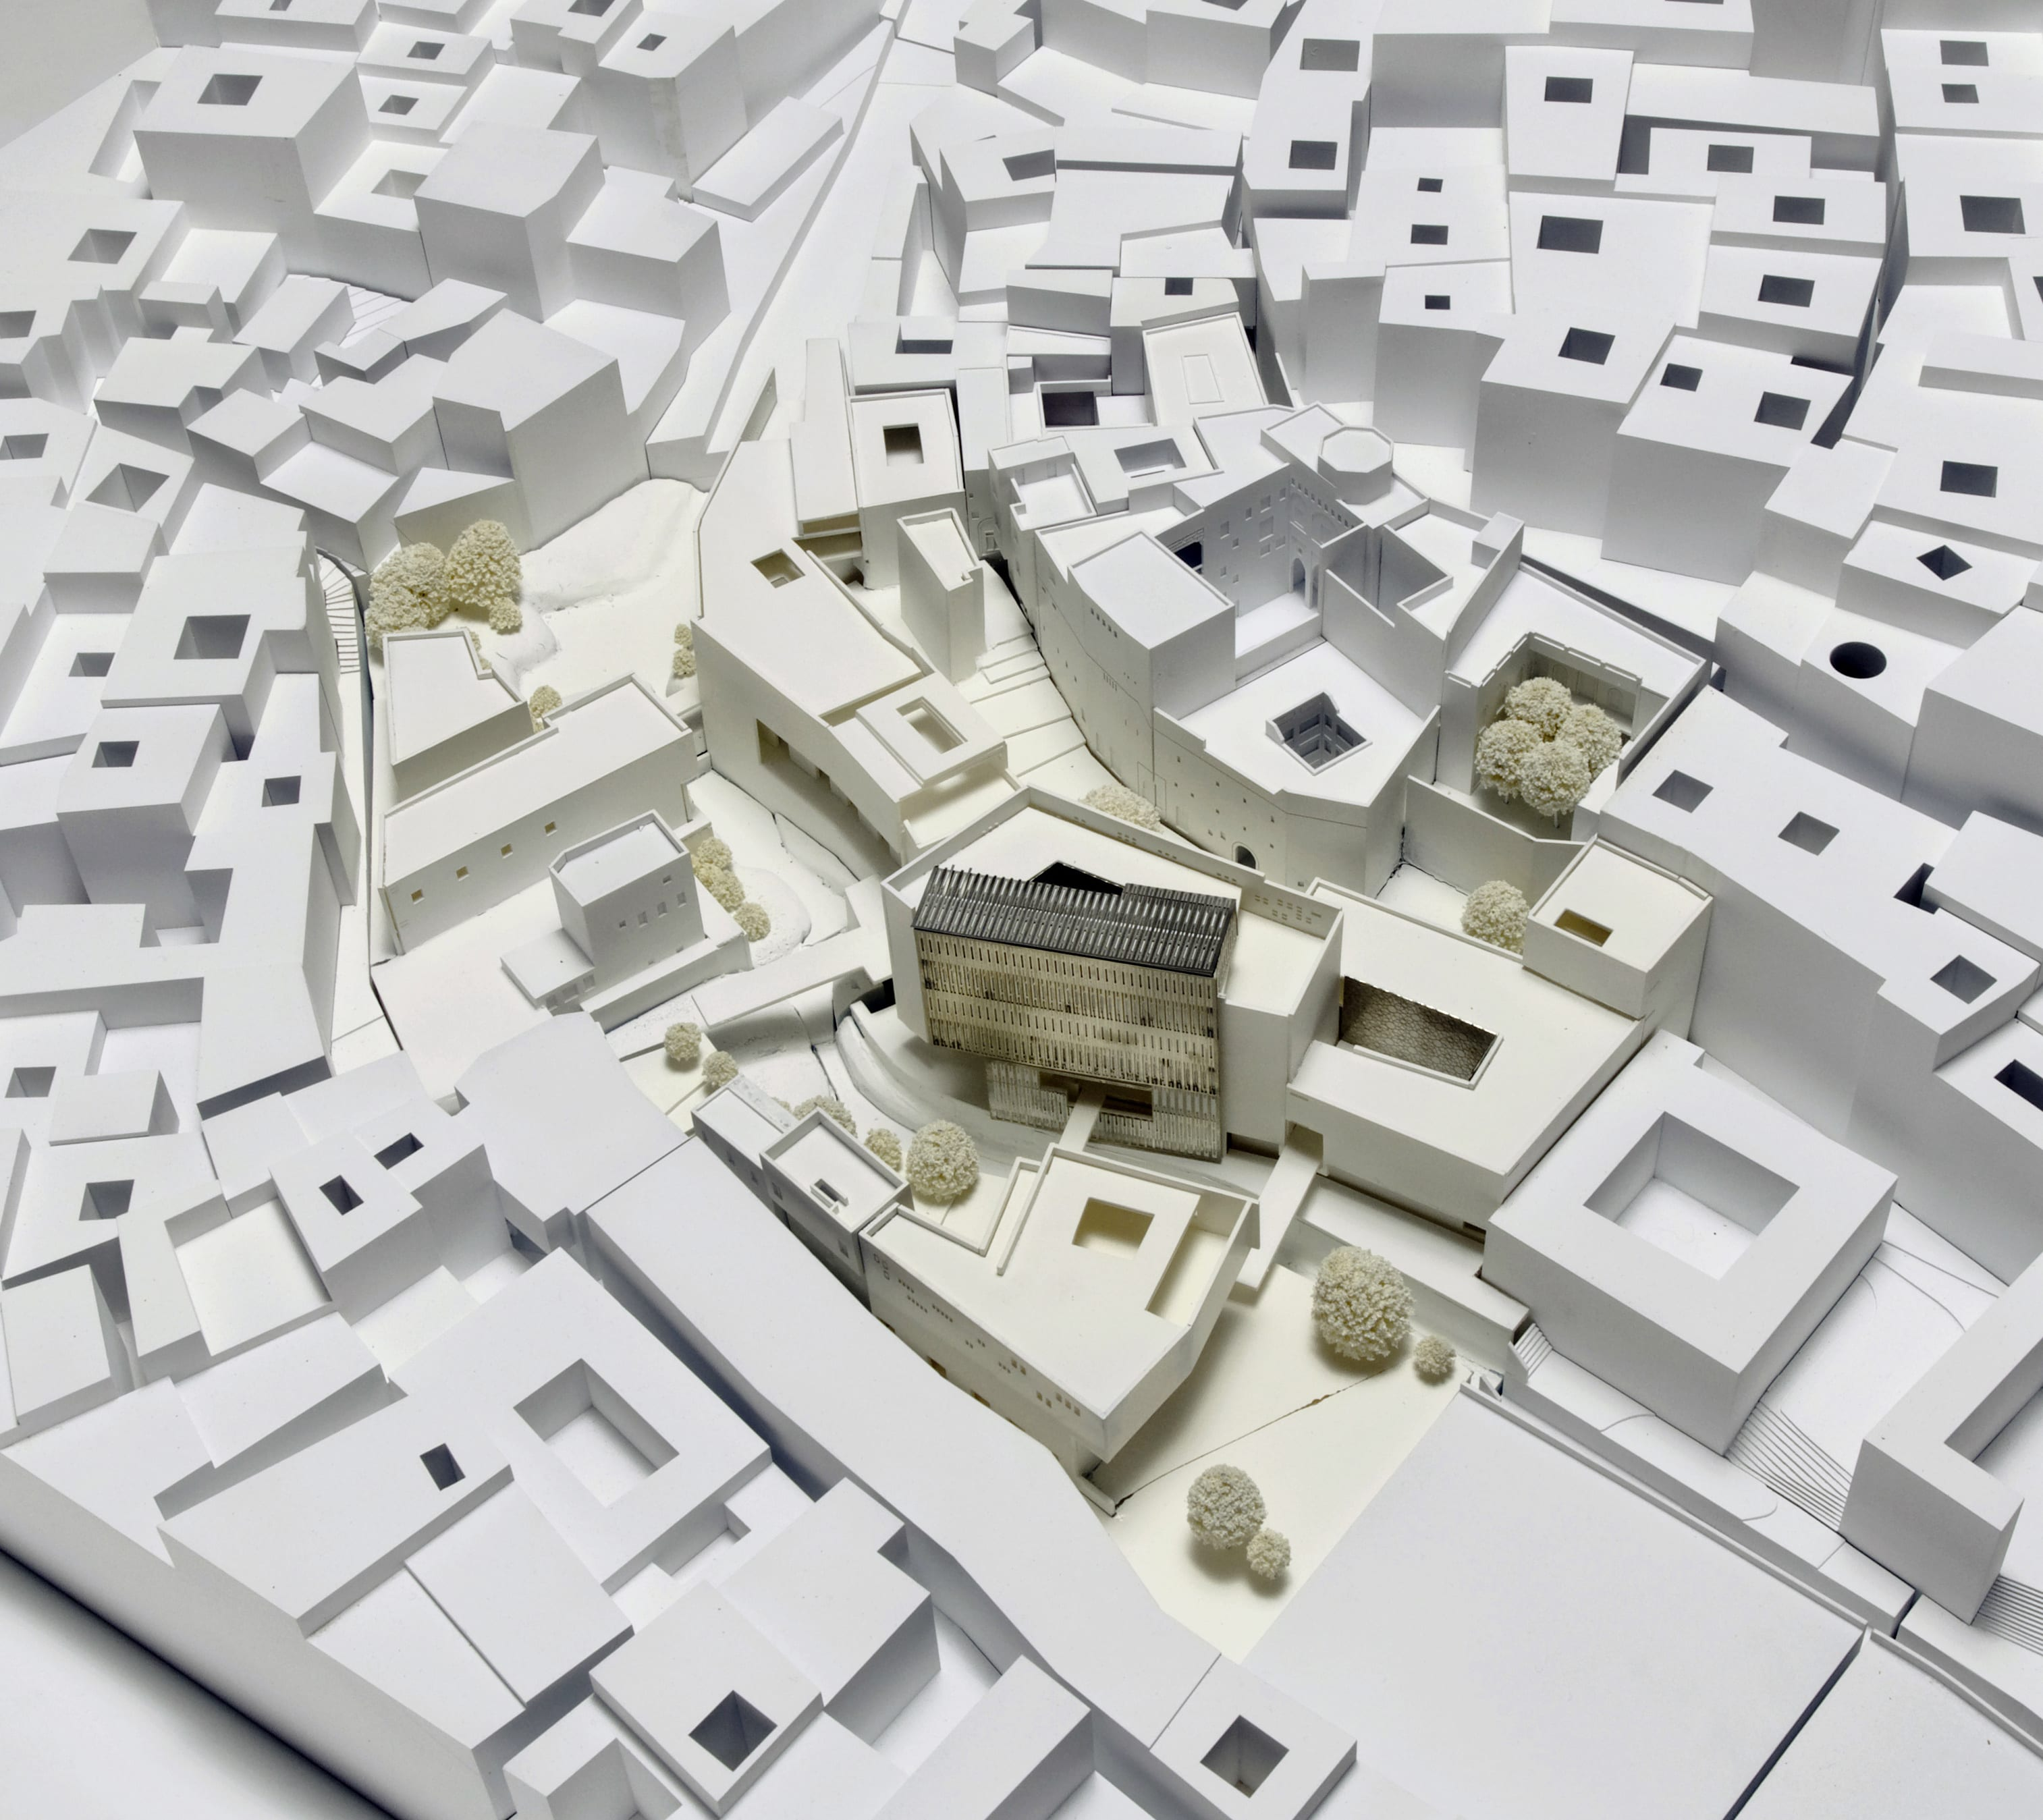 fes_model_5001_2_moxon_architects_aime kokon